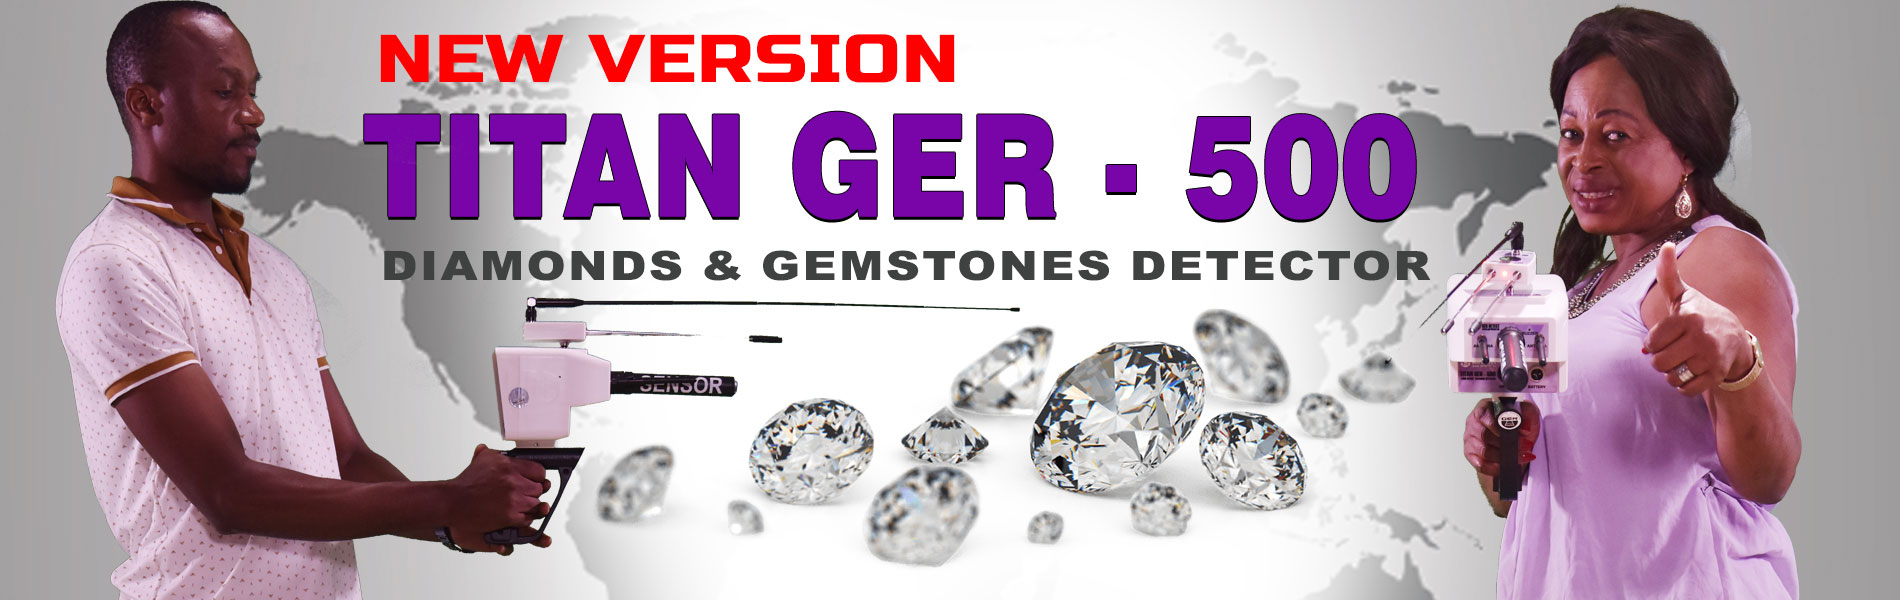 titan-ger-500-plus-best-gemston-diamond-detector-locator